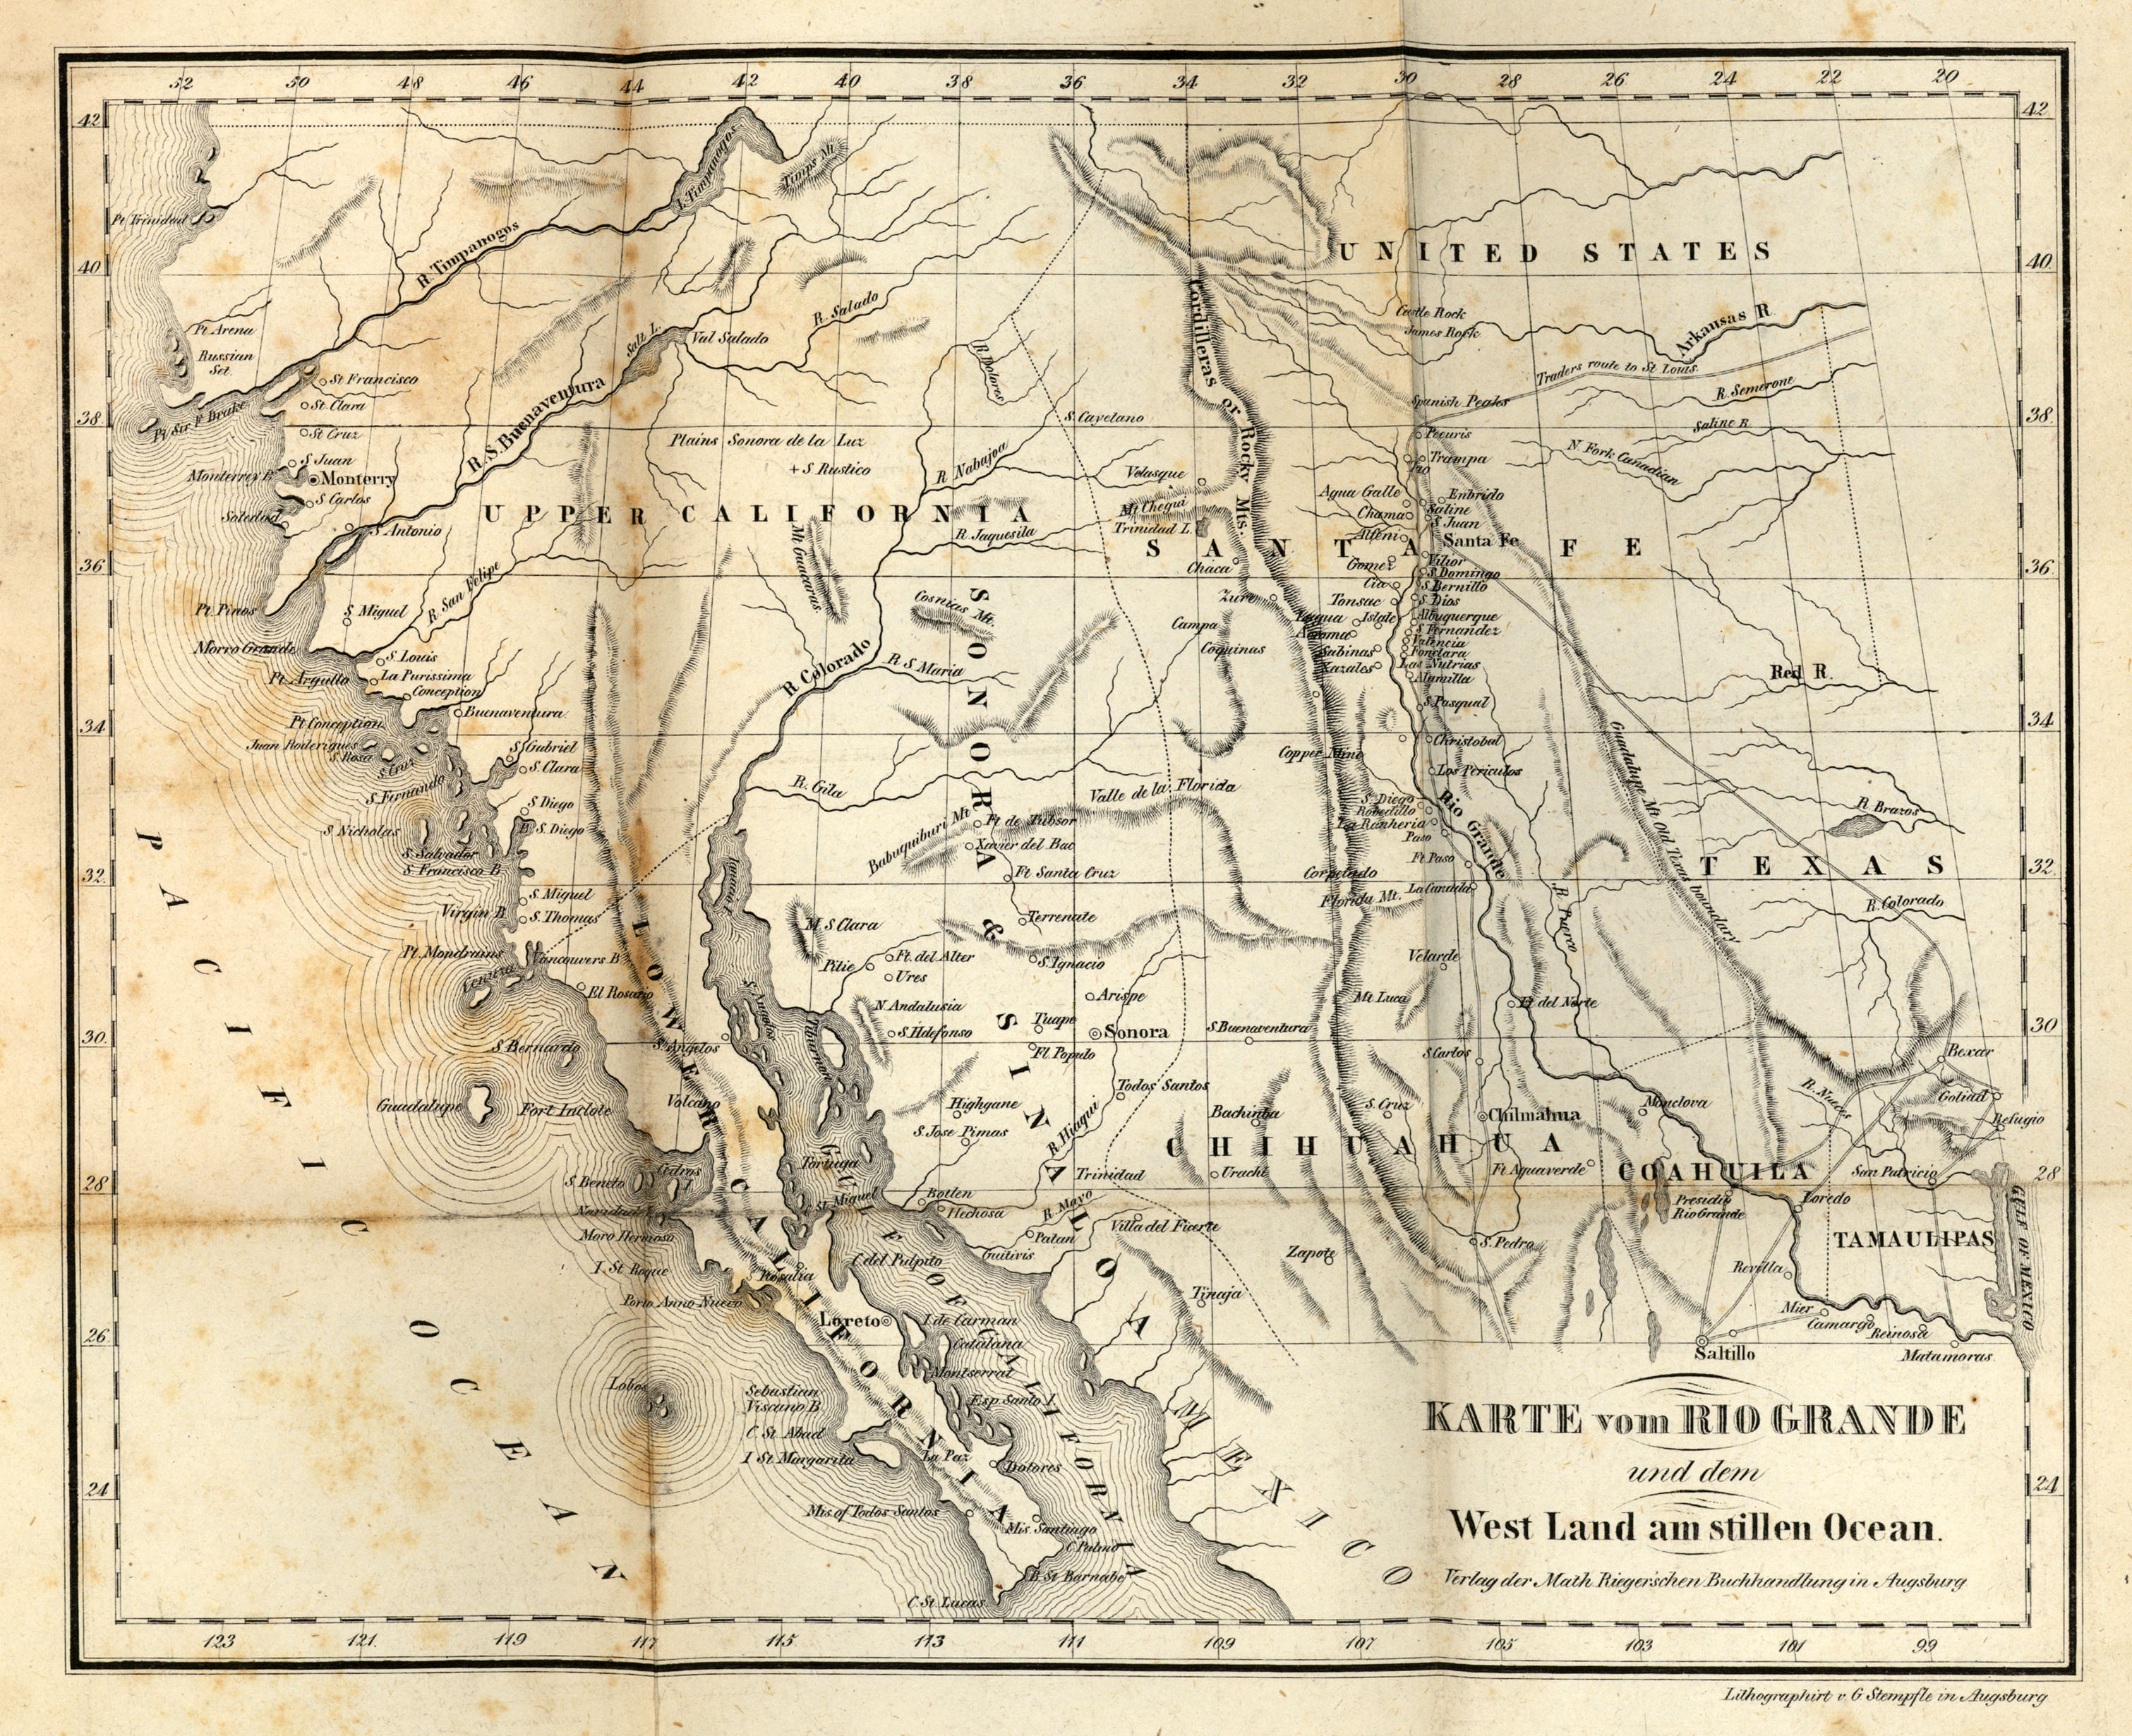 Americas Historical Maps PerryCastañeda Map Collection UT - Southwestern usa map